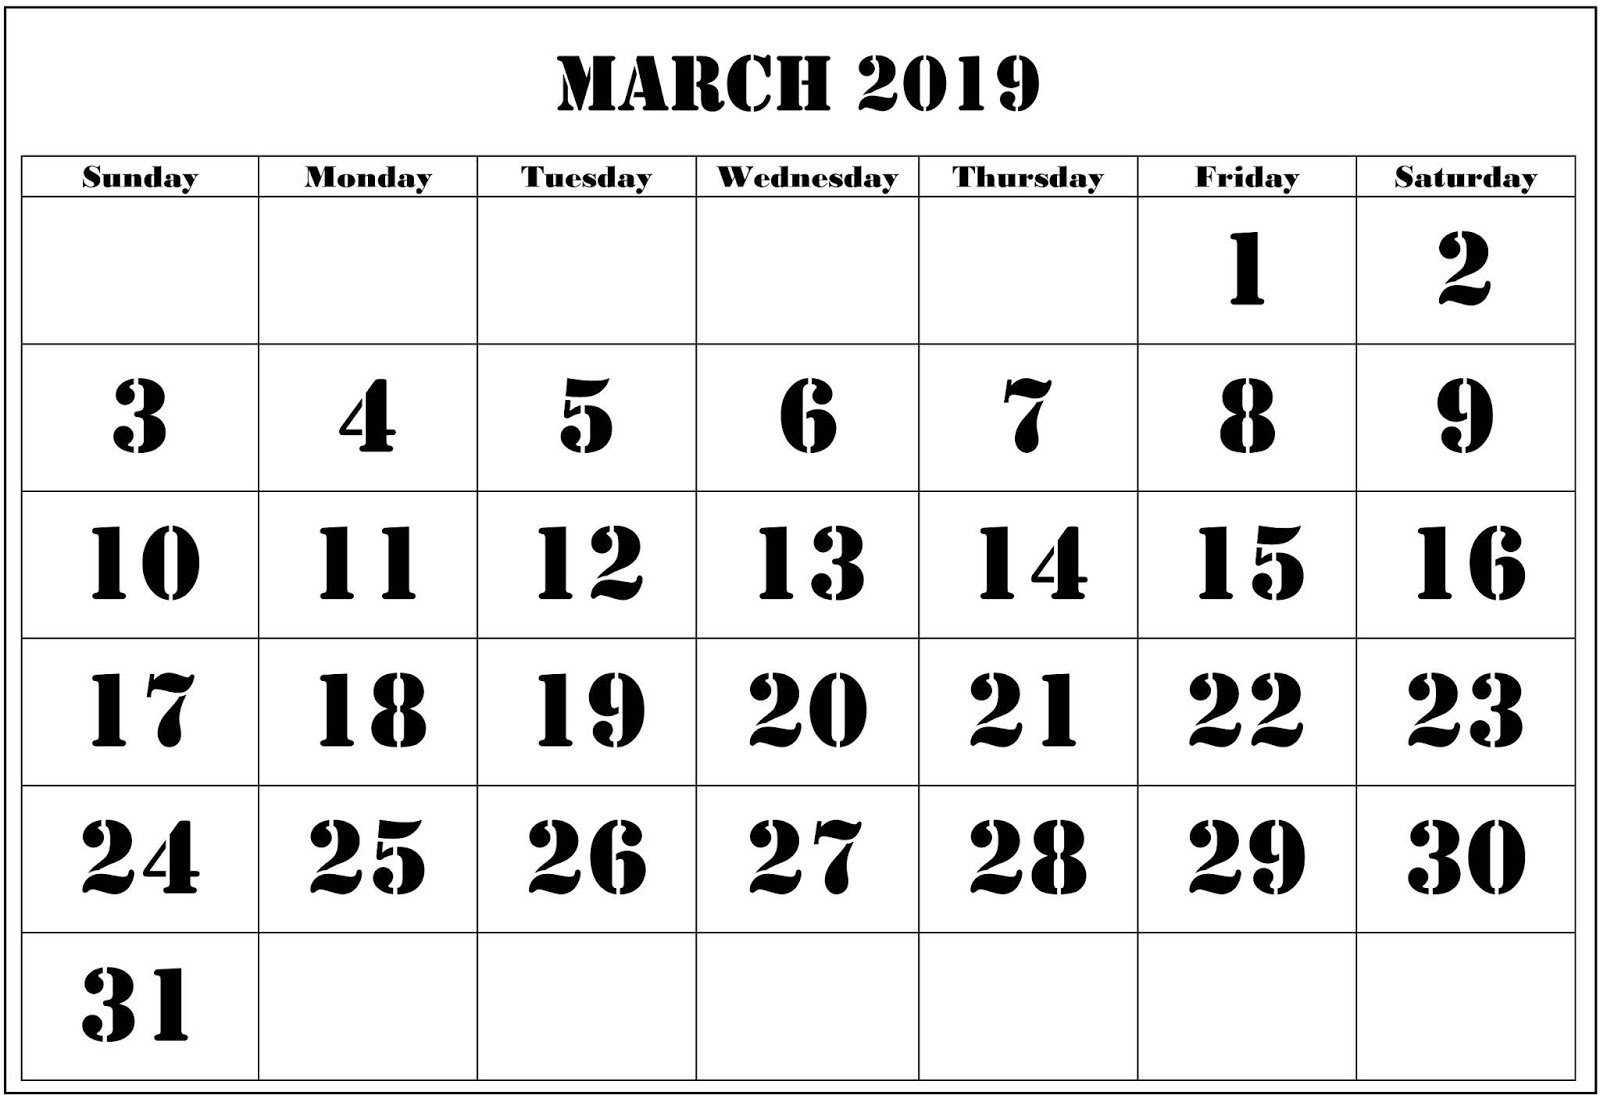 March 2019 Calendar Template Download March 2 2019 Calendar